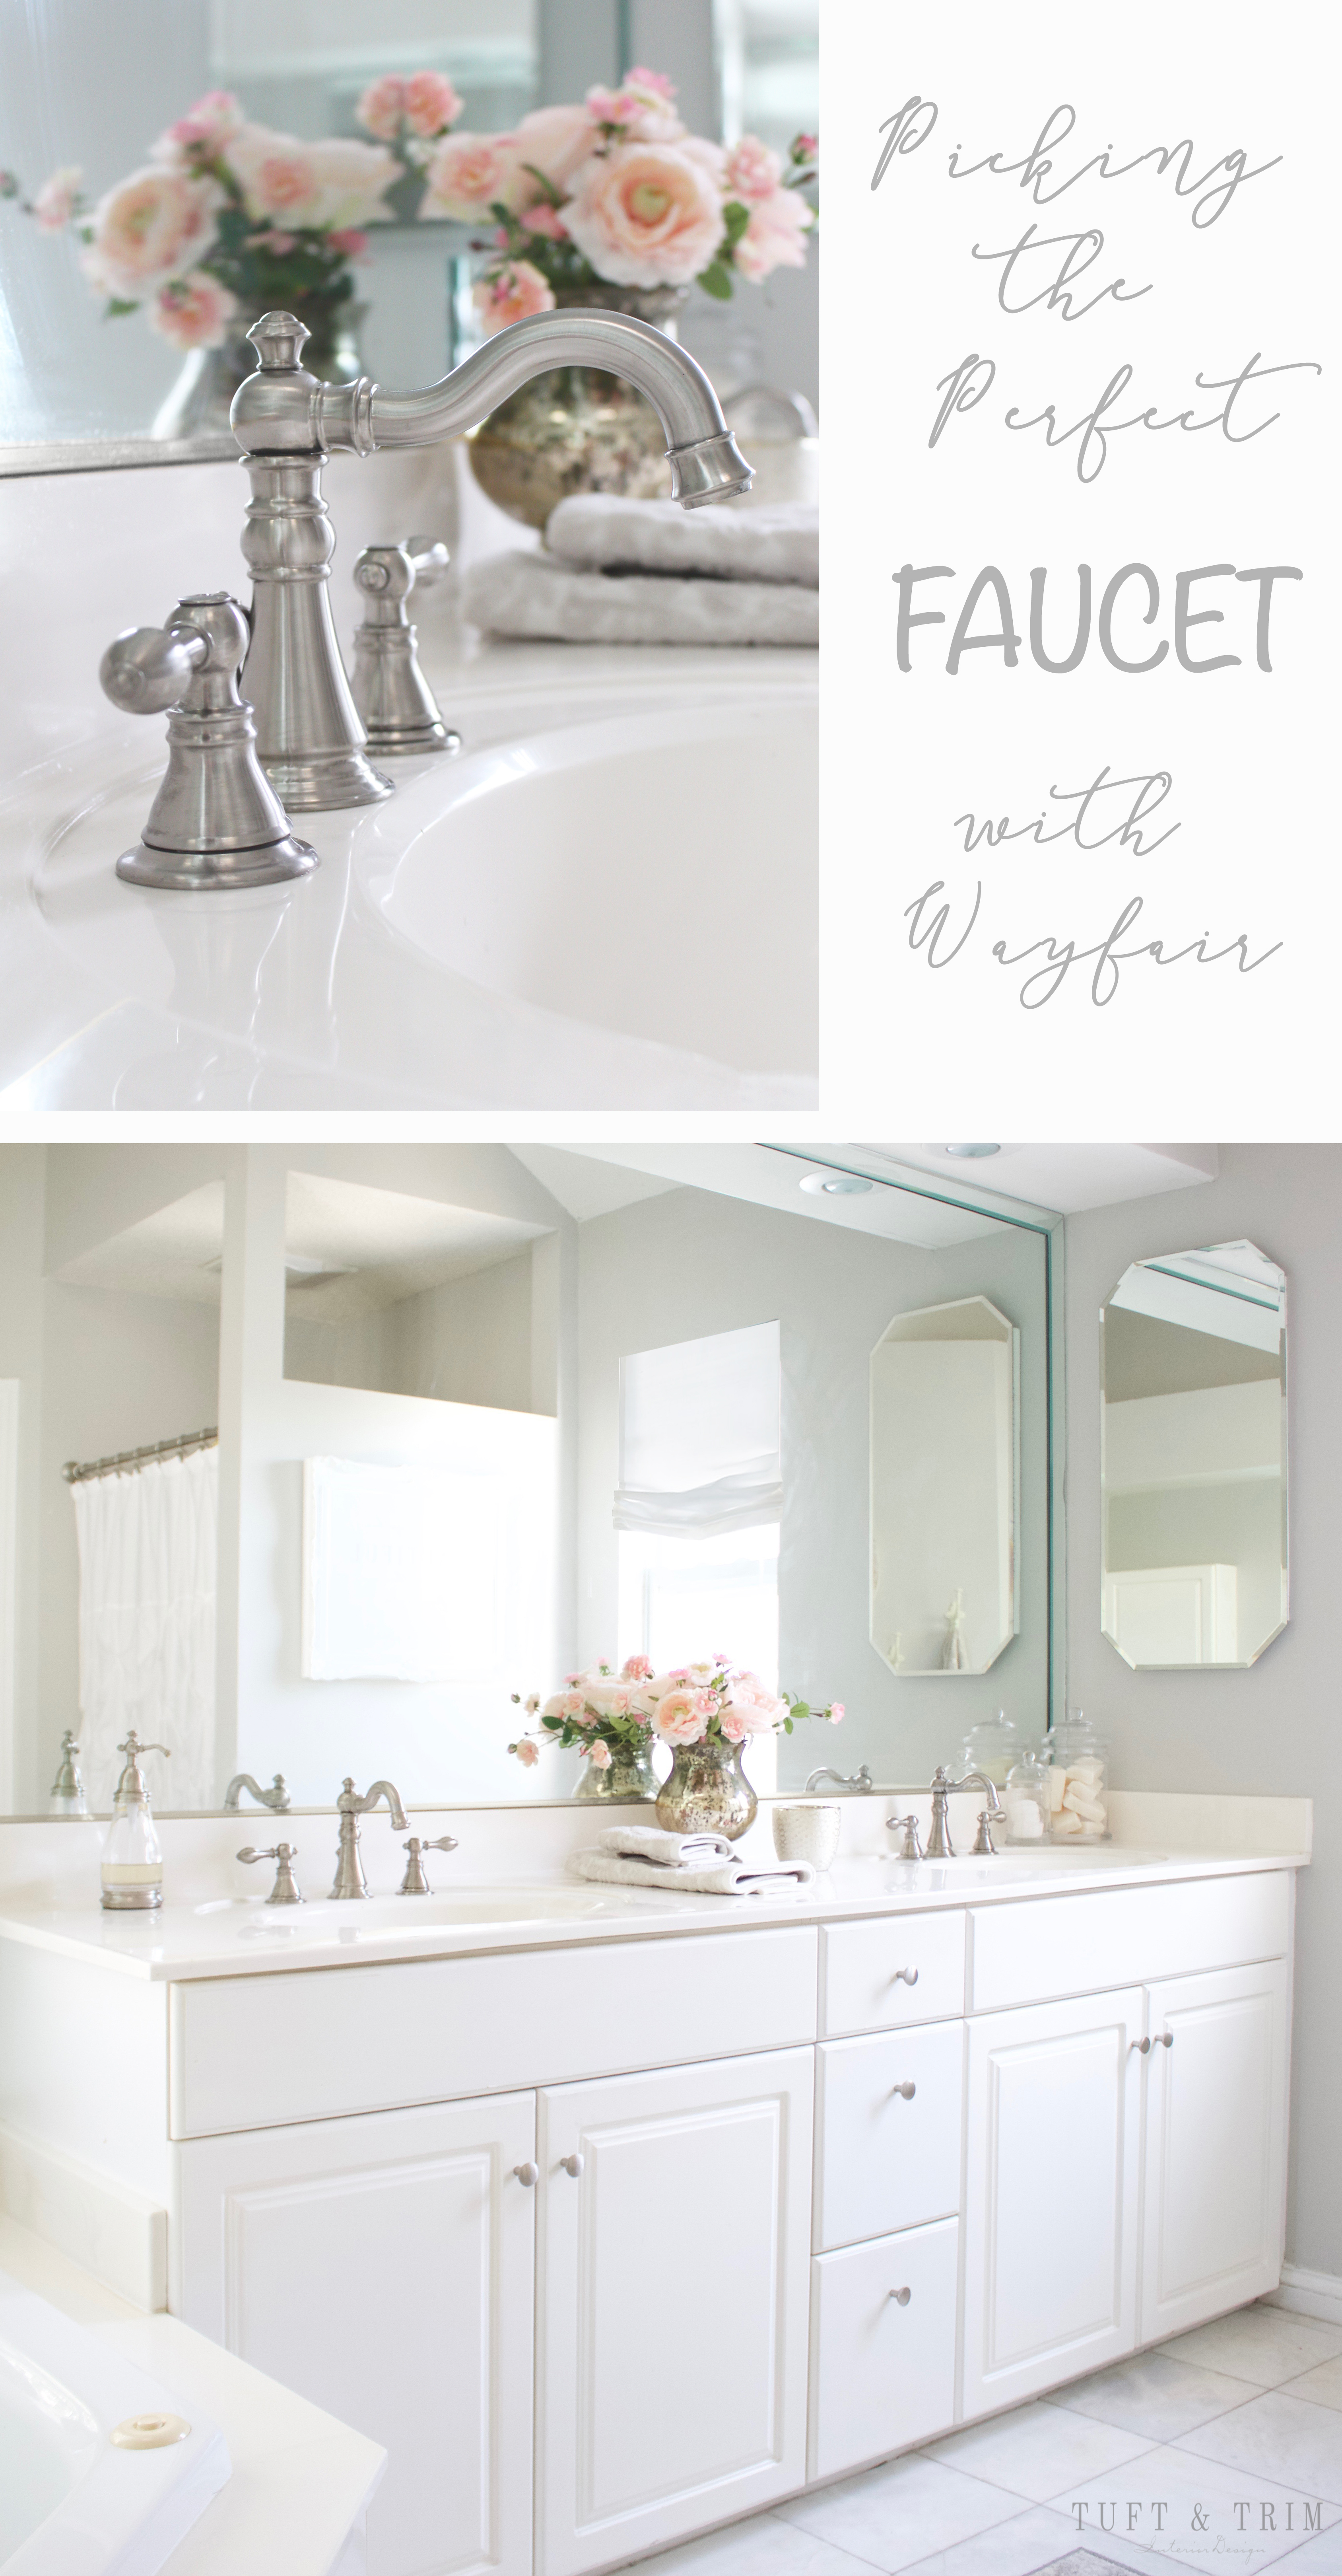 Picking the Perfect Faucet with Wayfair